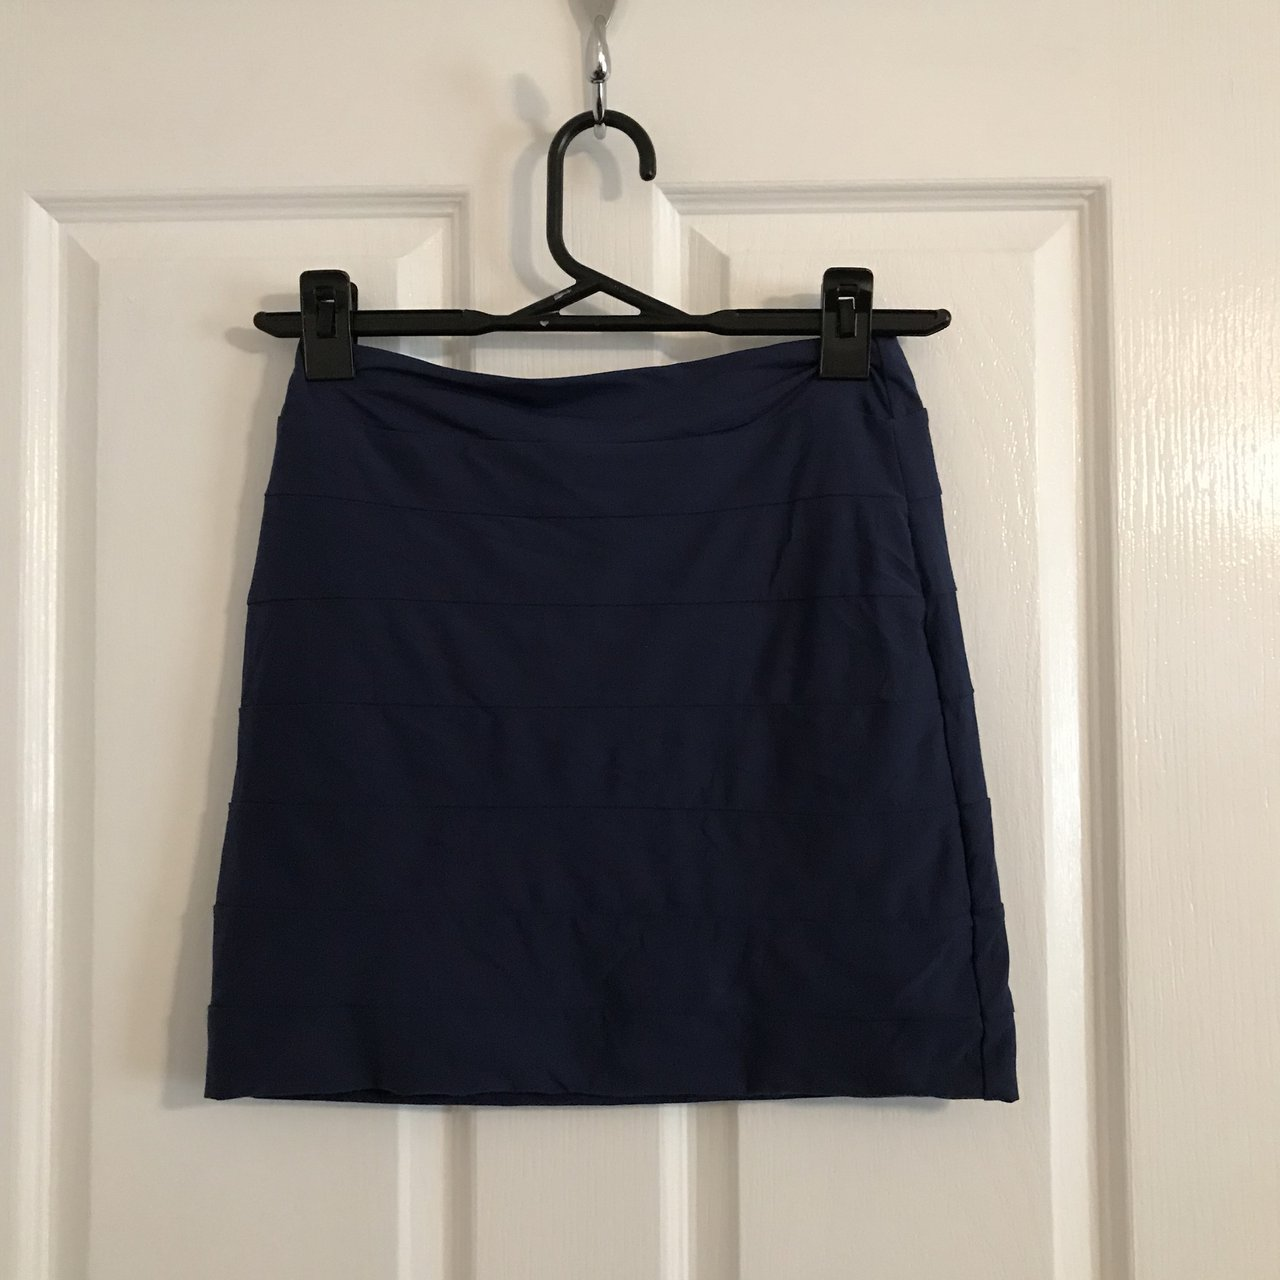 KOOKAI bodycon skirt navy blue. I m great condition. Only - Depop 0abf06e13